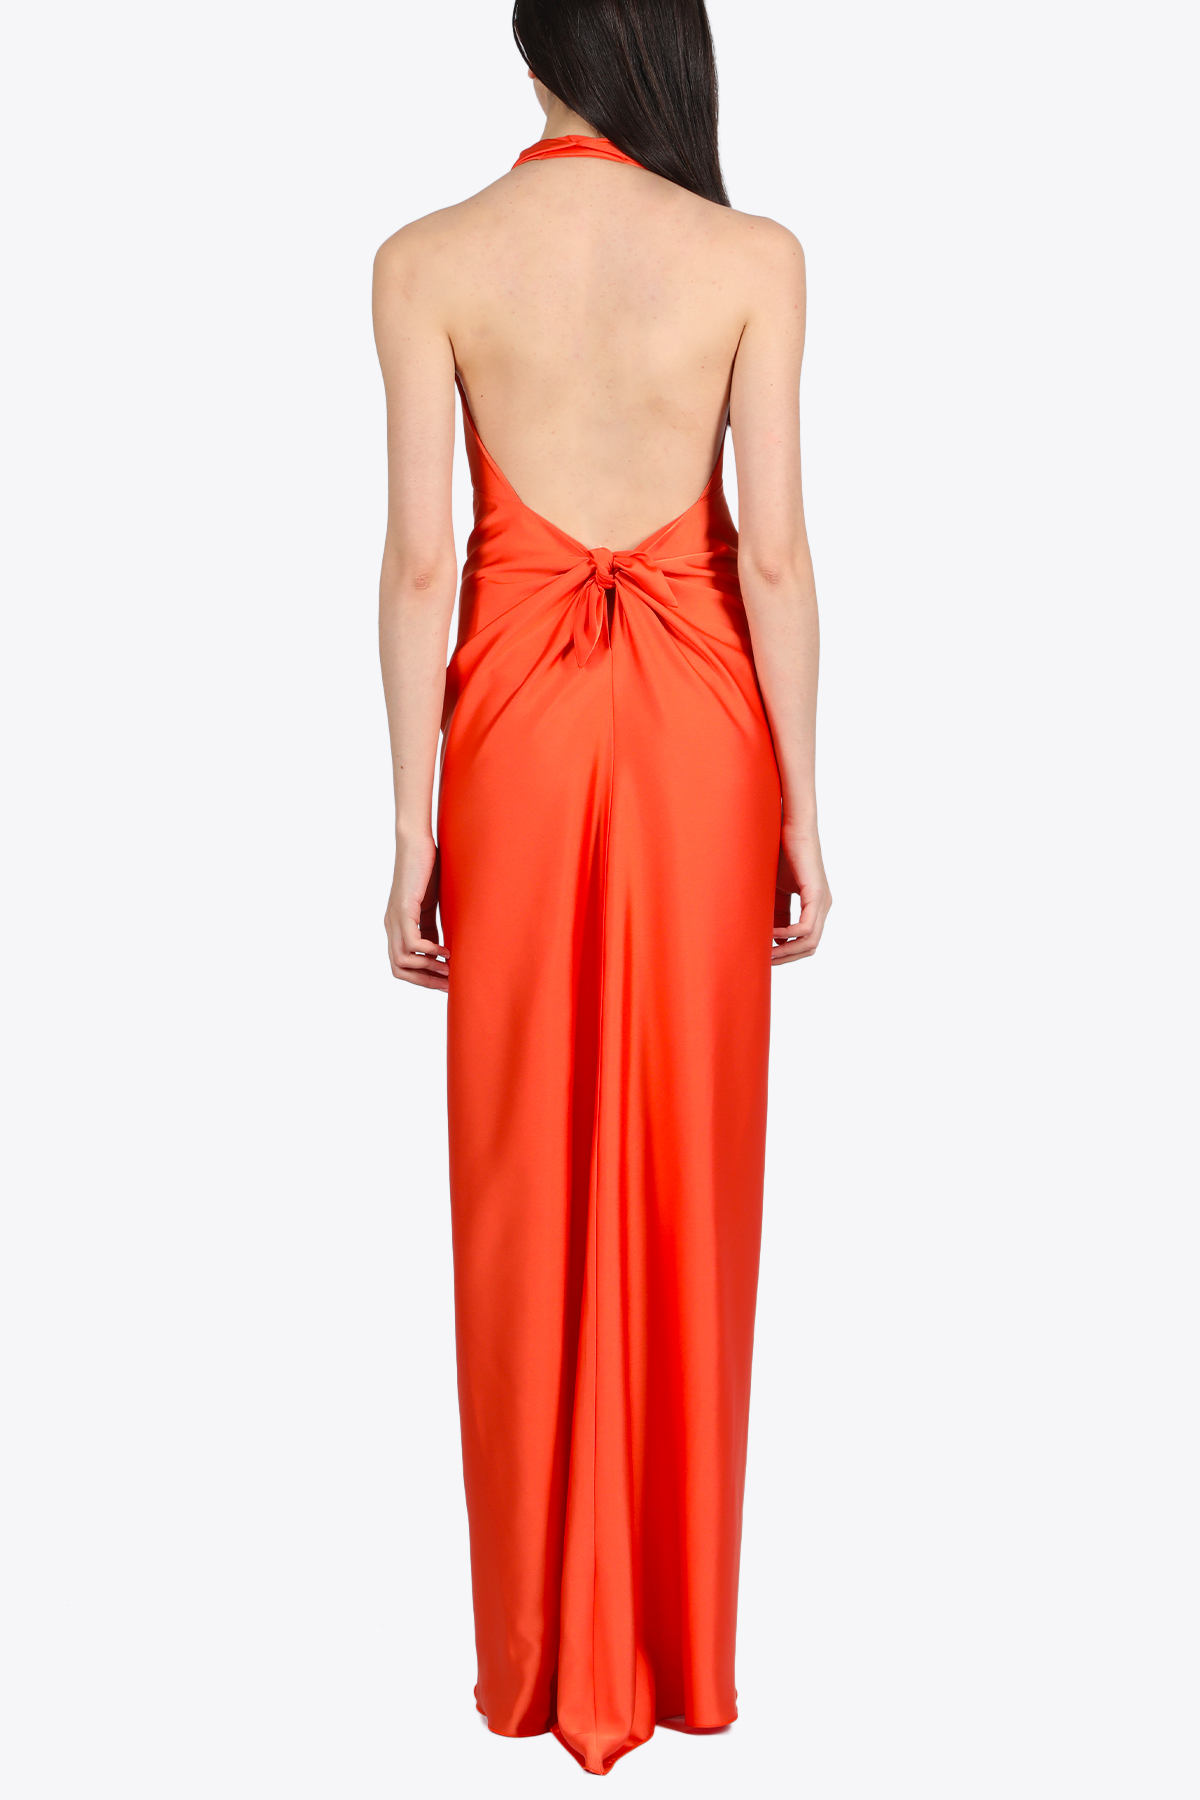 BACKLESS LONG DRESS DRESSISM | 11 | 2701 1615CARROT